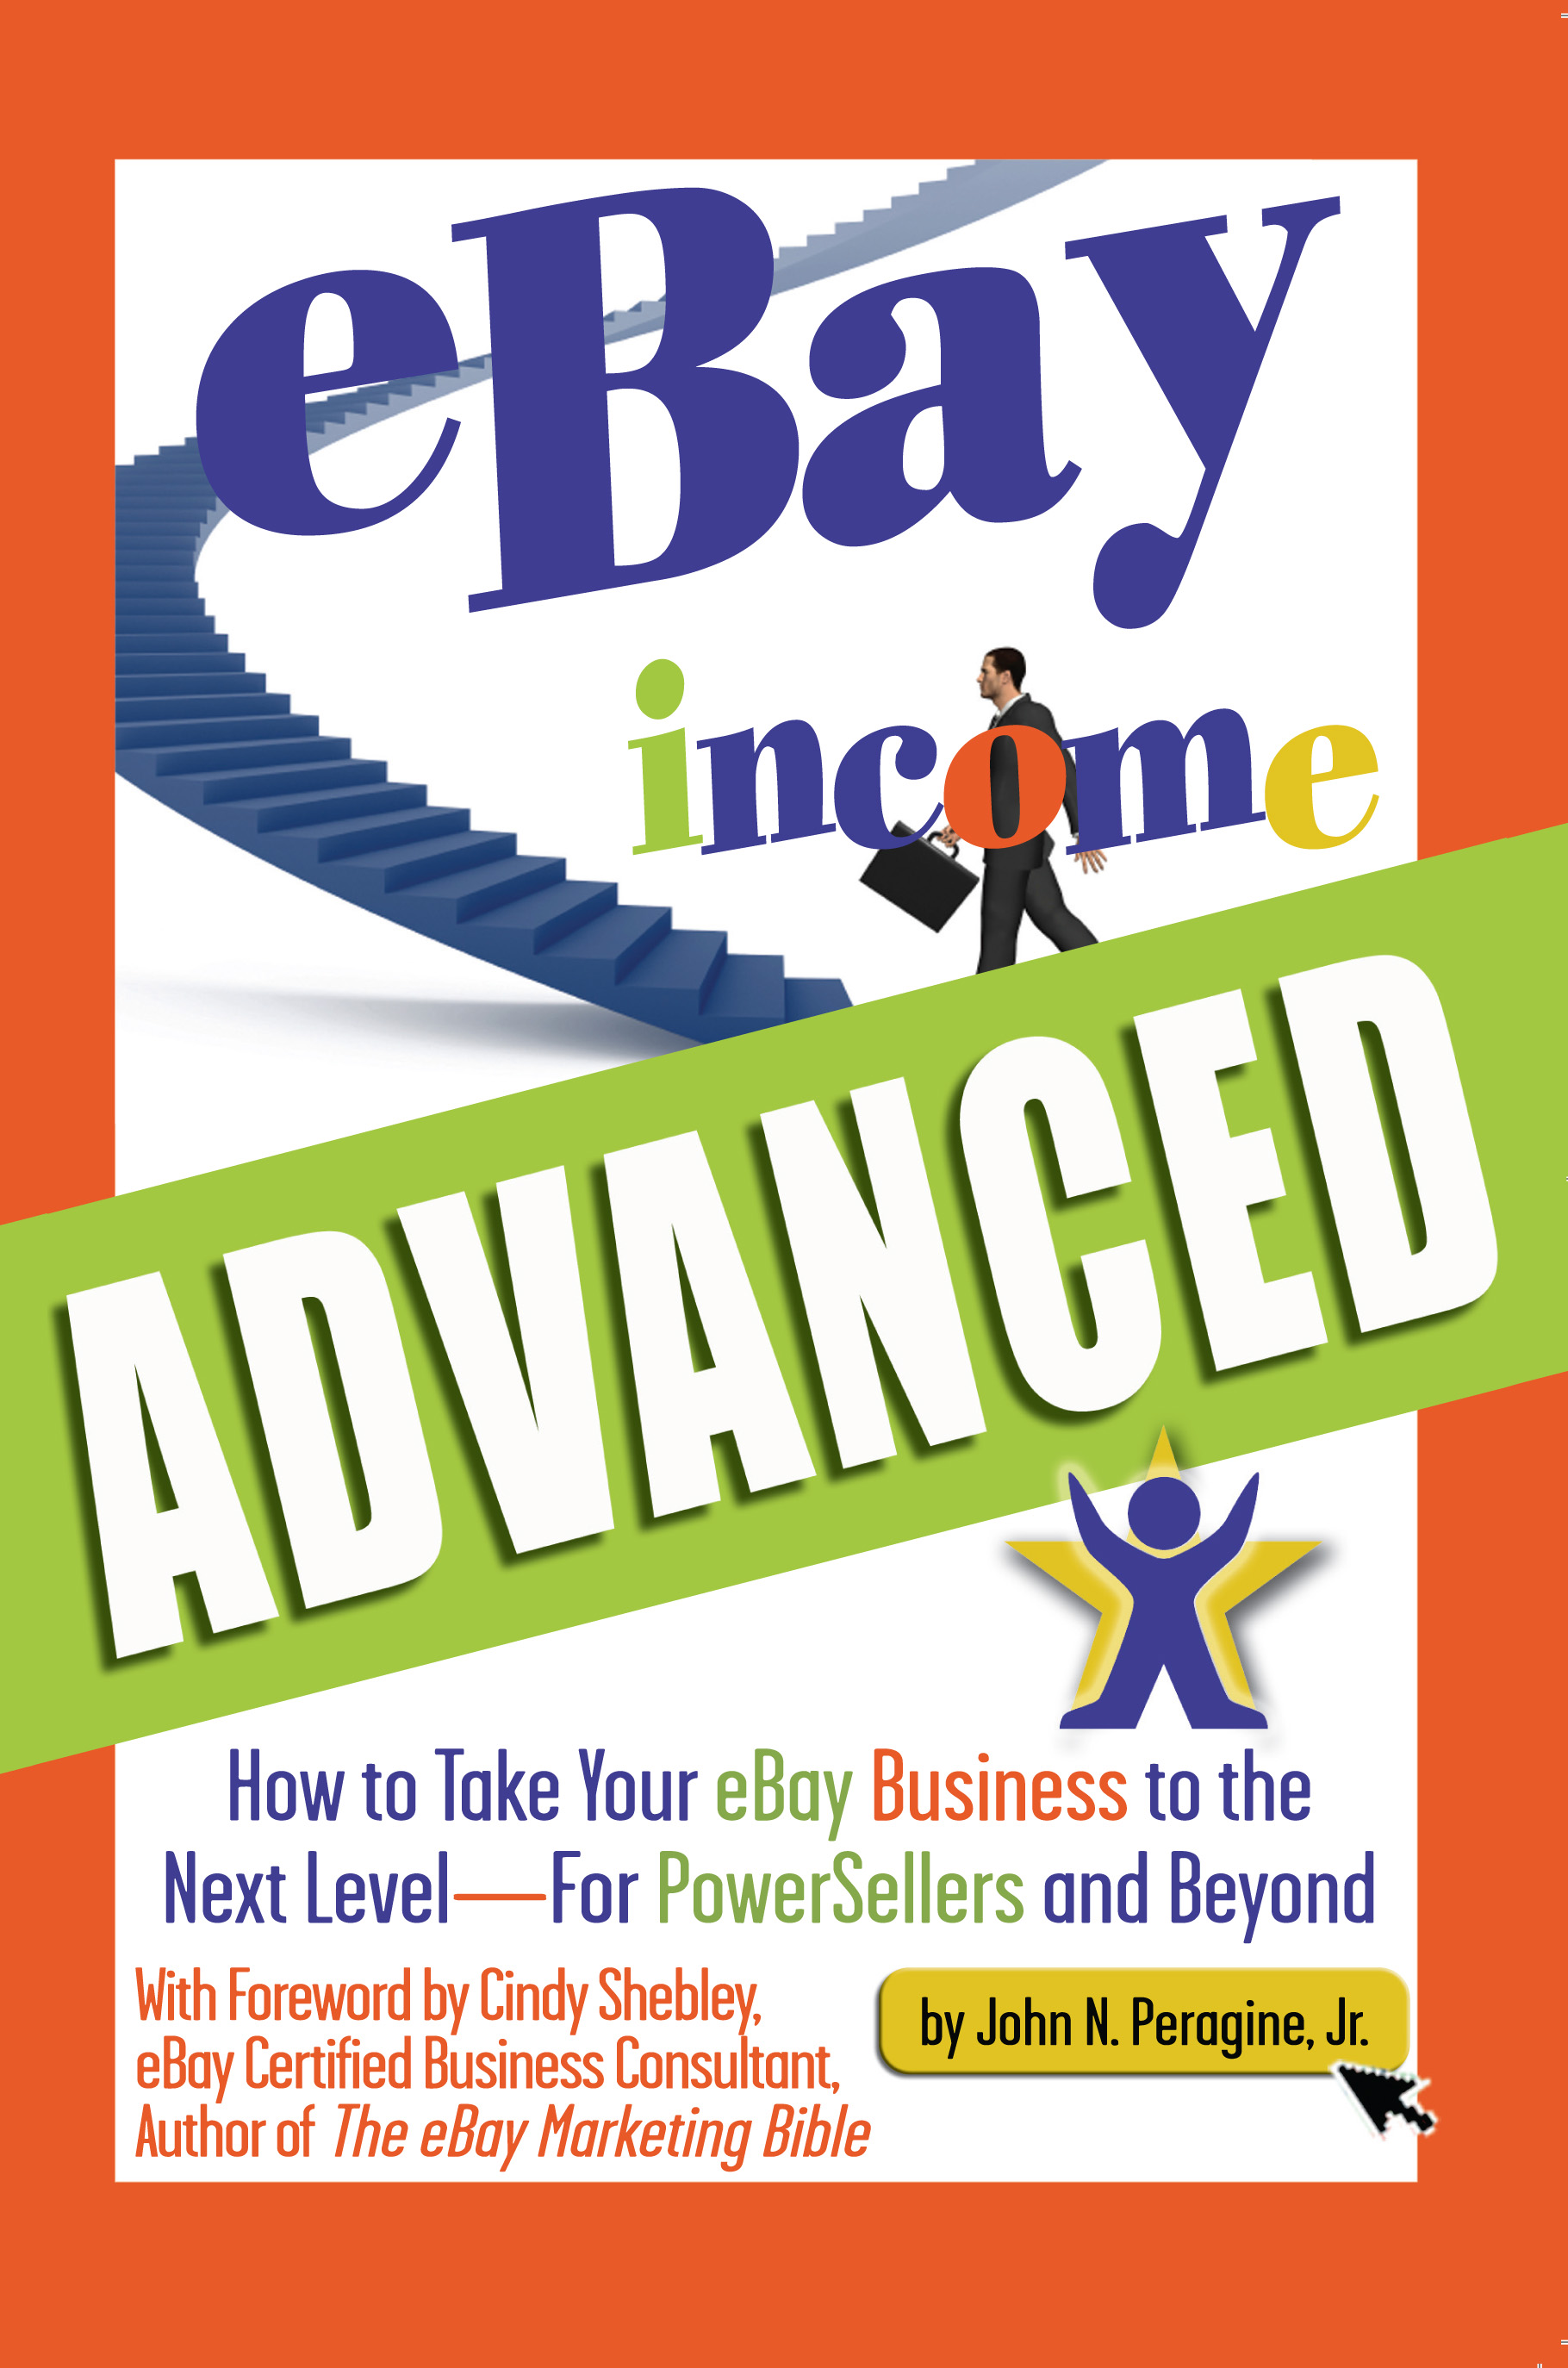 eBay Income Advanced How to Take Your eBay Business to the Next Level For PowerSellers and Beyond